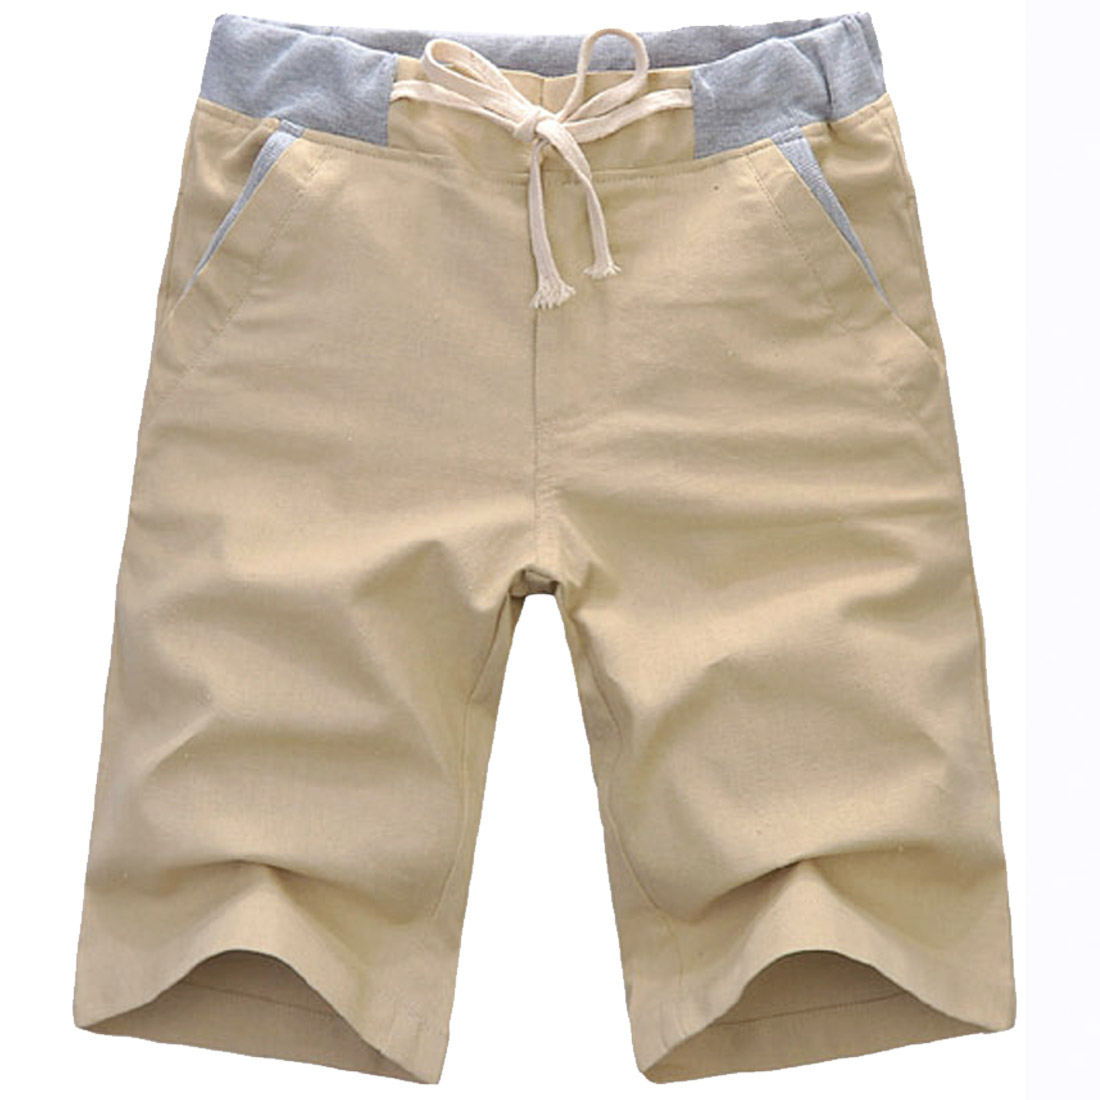 Men Zipper Fly Buttoned Closure Elastic Waist Shorts Khaki W31